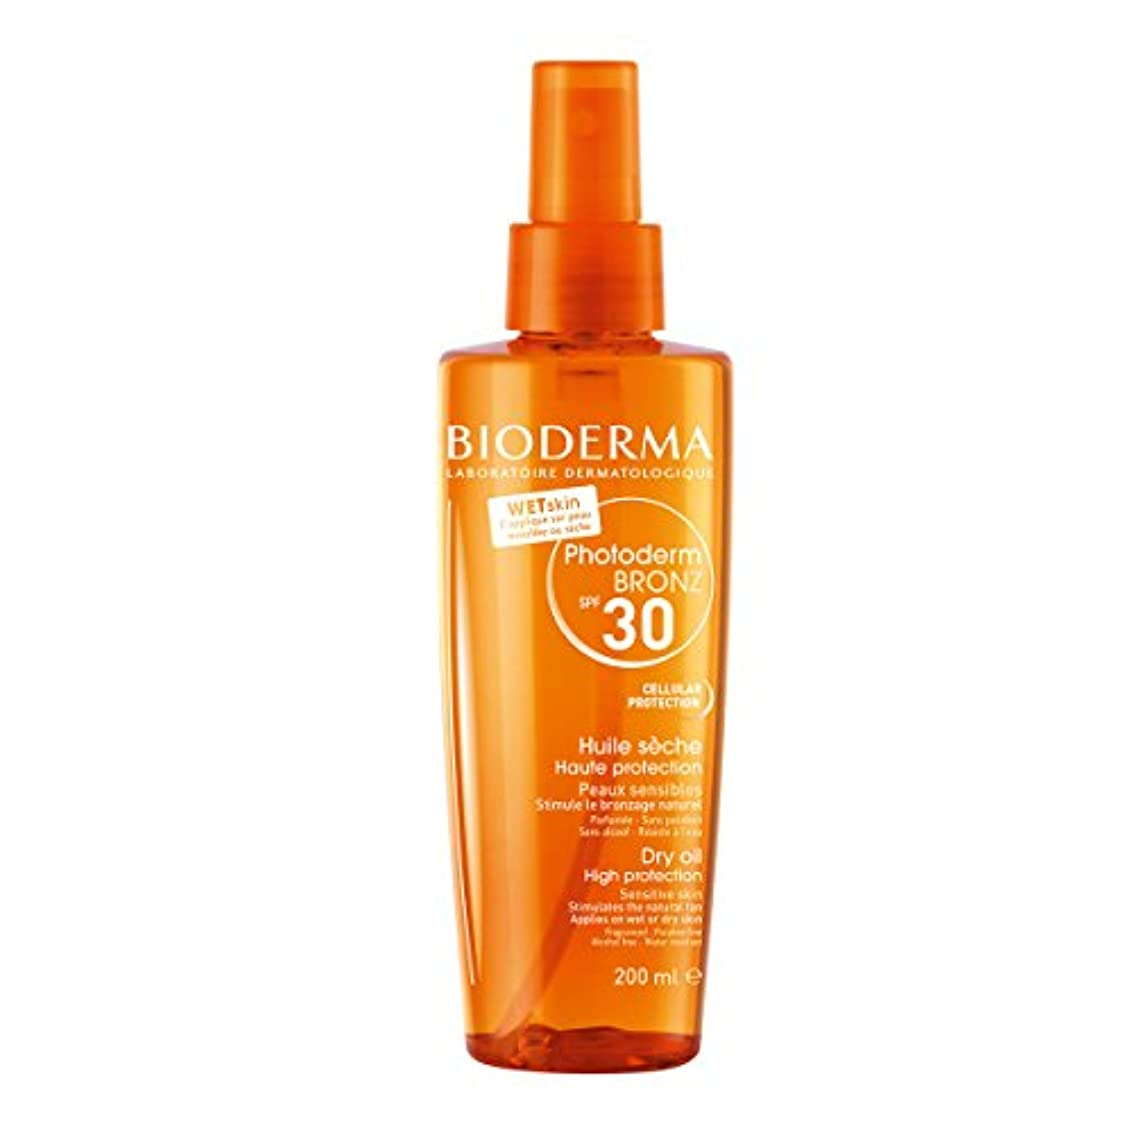 爆発長々と軸Bioderma Photoderm Bronz Spf30 Dry Oil 200ml [並行輸入品]